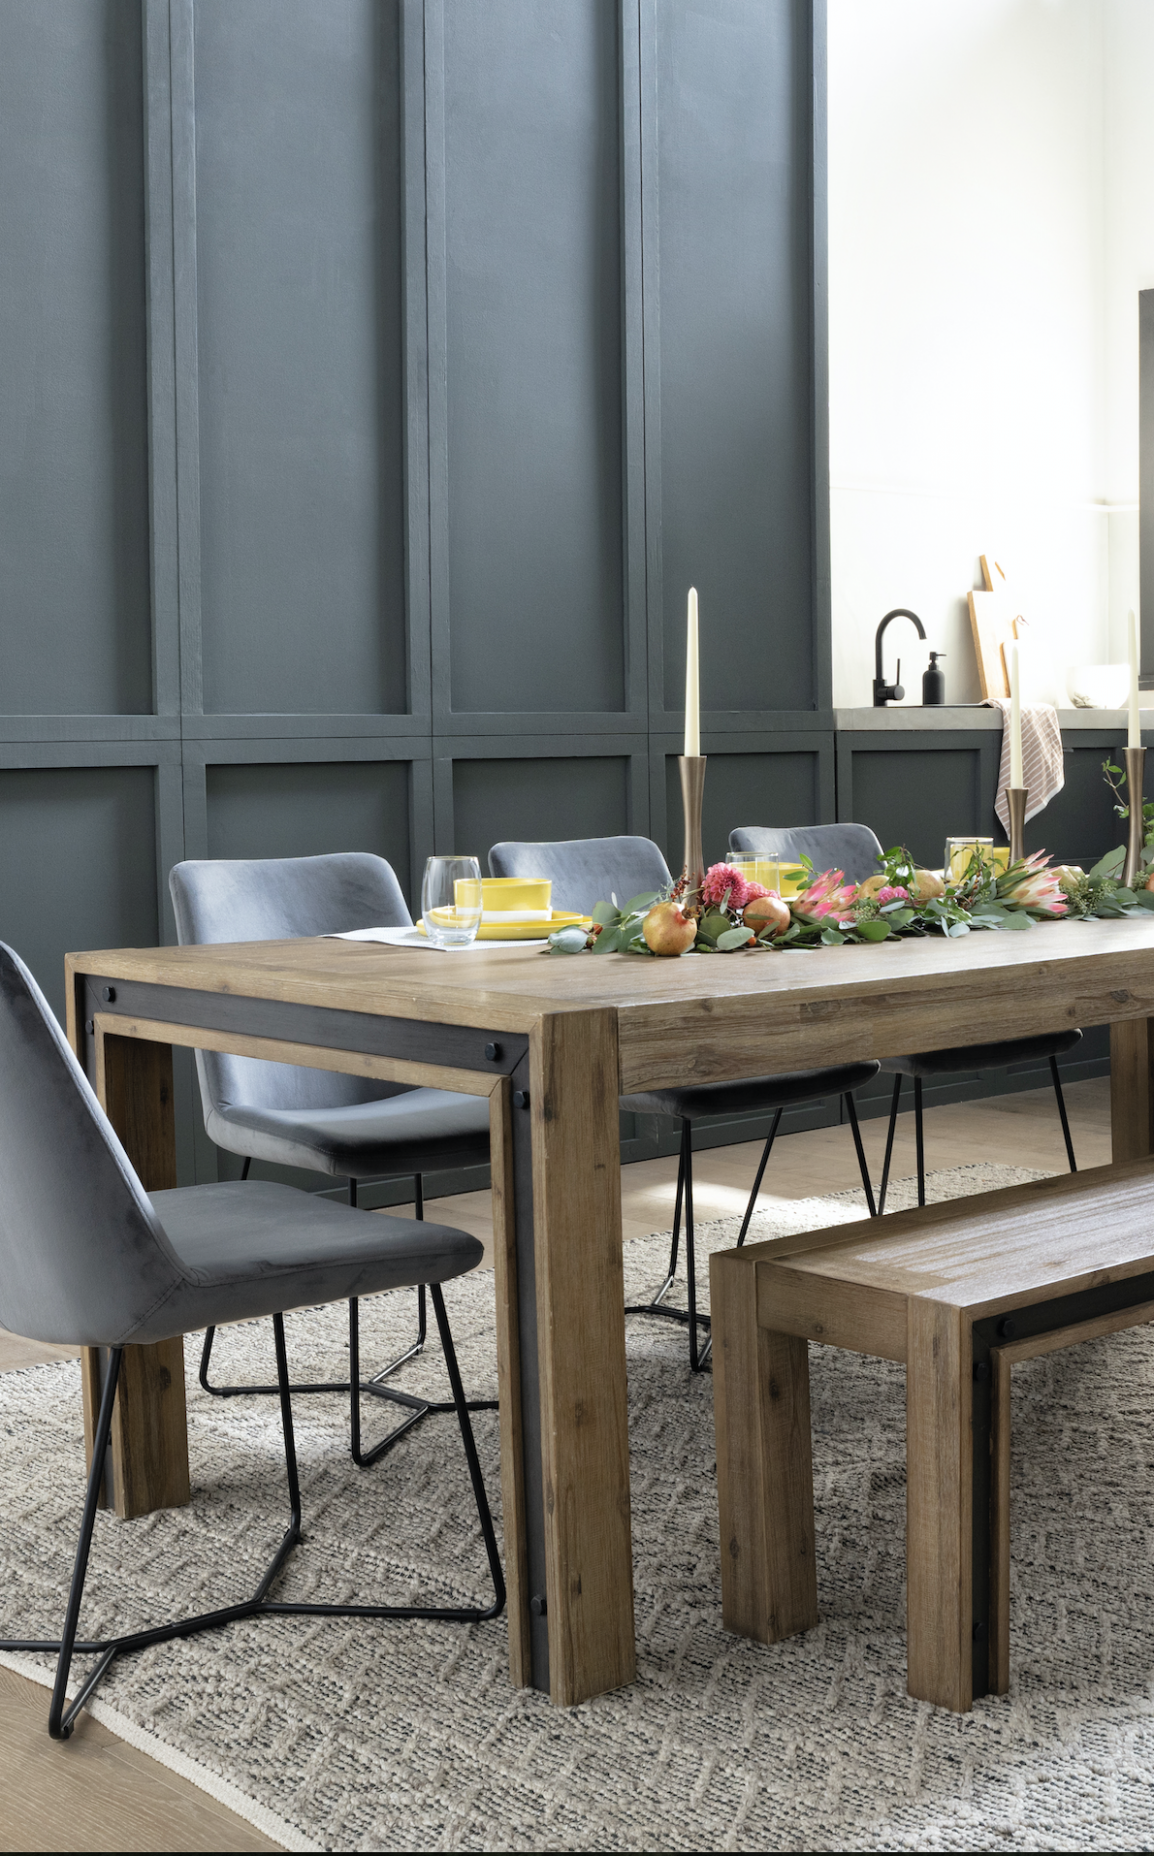 Amos Extension Dining Table in 10 | Dining table, Extension ...